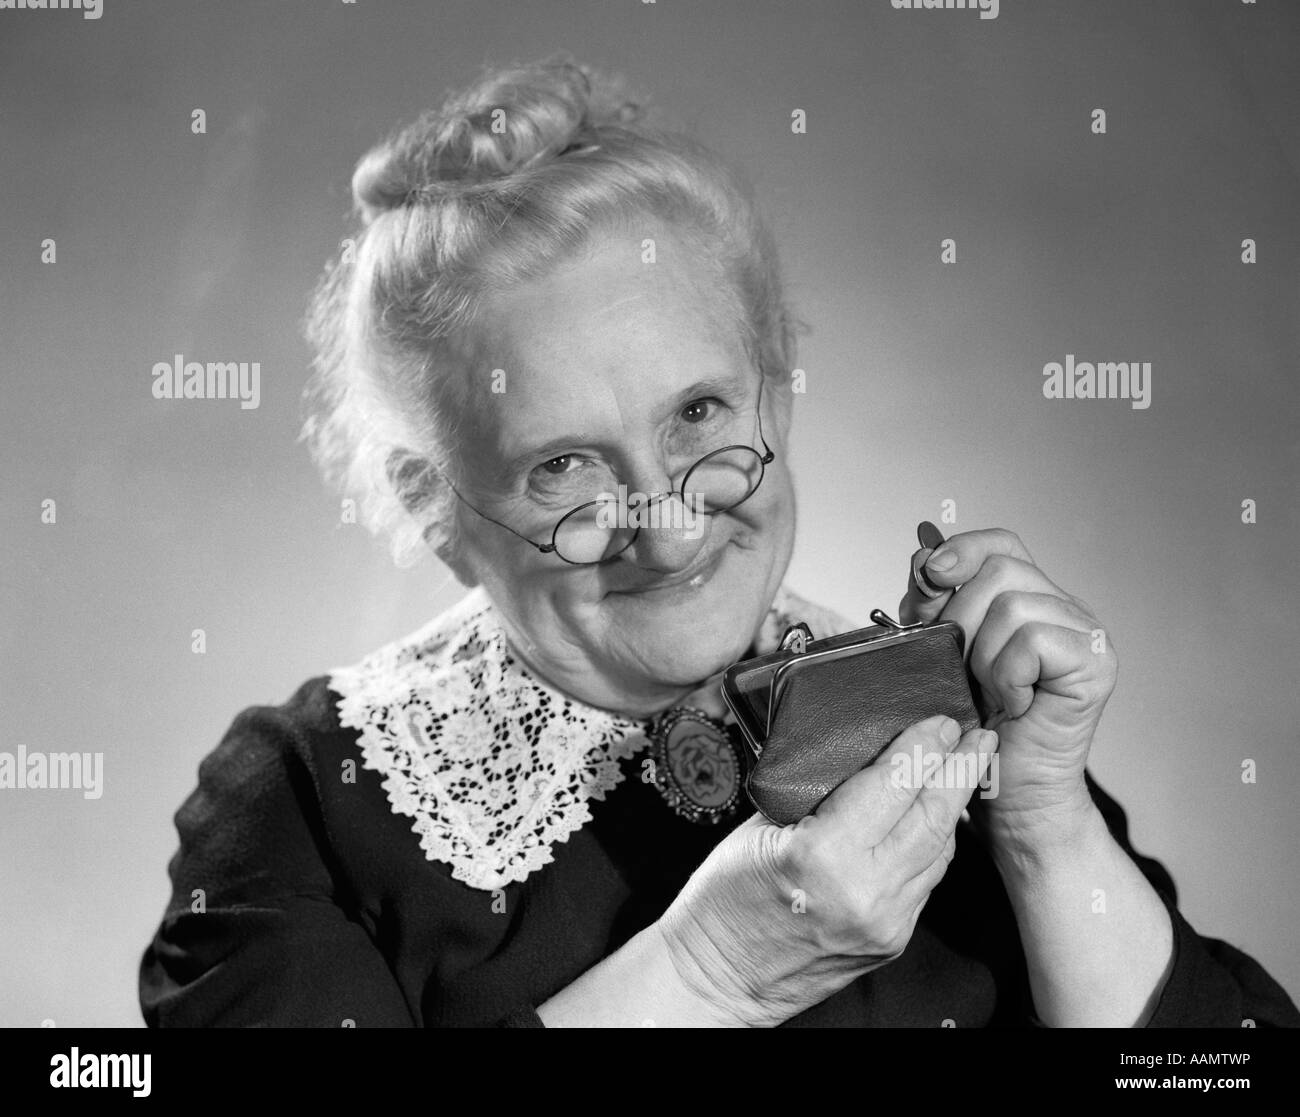 1950s PORTRAIT OF ELDERLY GRANNY PUTTING CHANGE IN PURSE - Stock Image